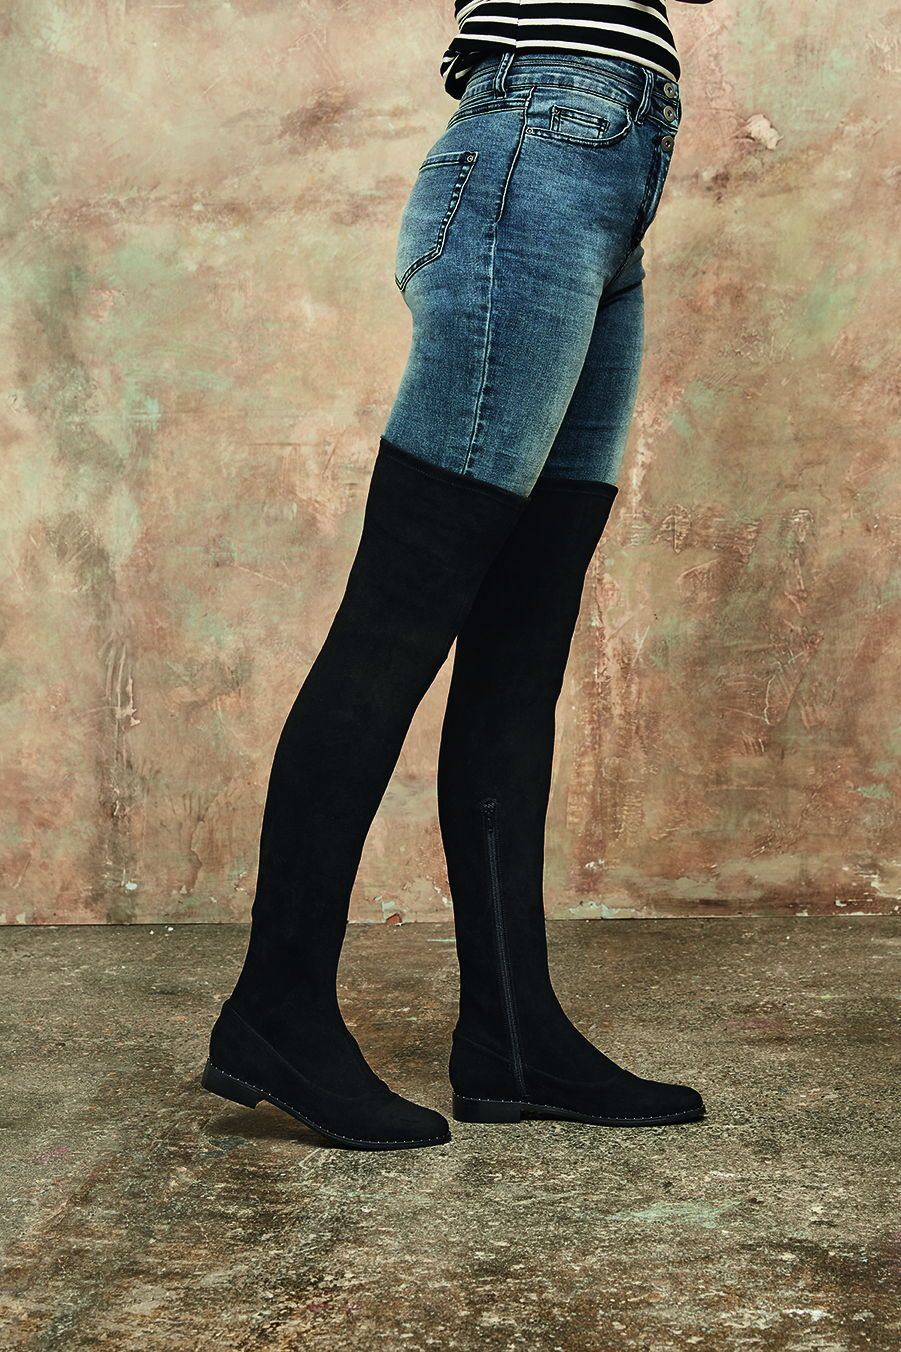 dc418bce203 Long Tall Sally Luna Studded Detail Otk Boot | Large Size Women's ...